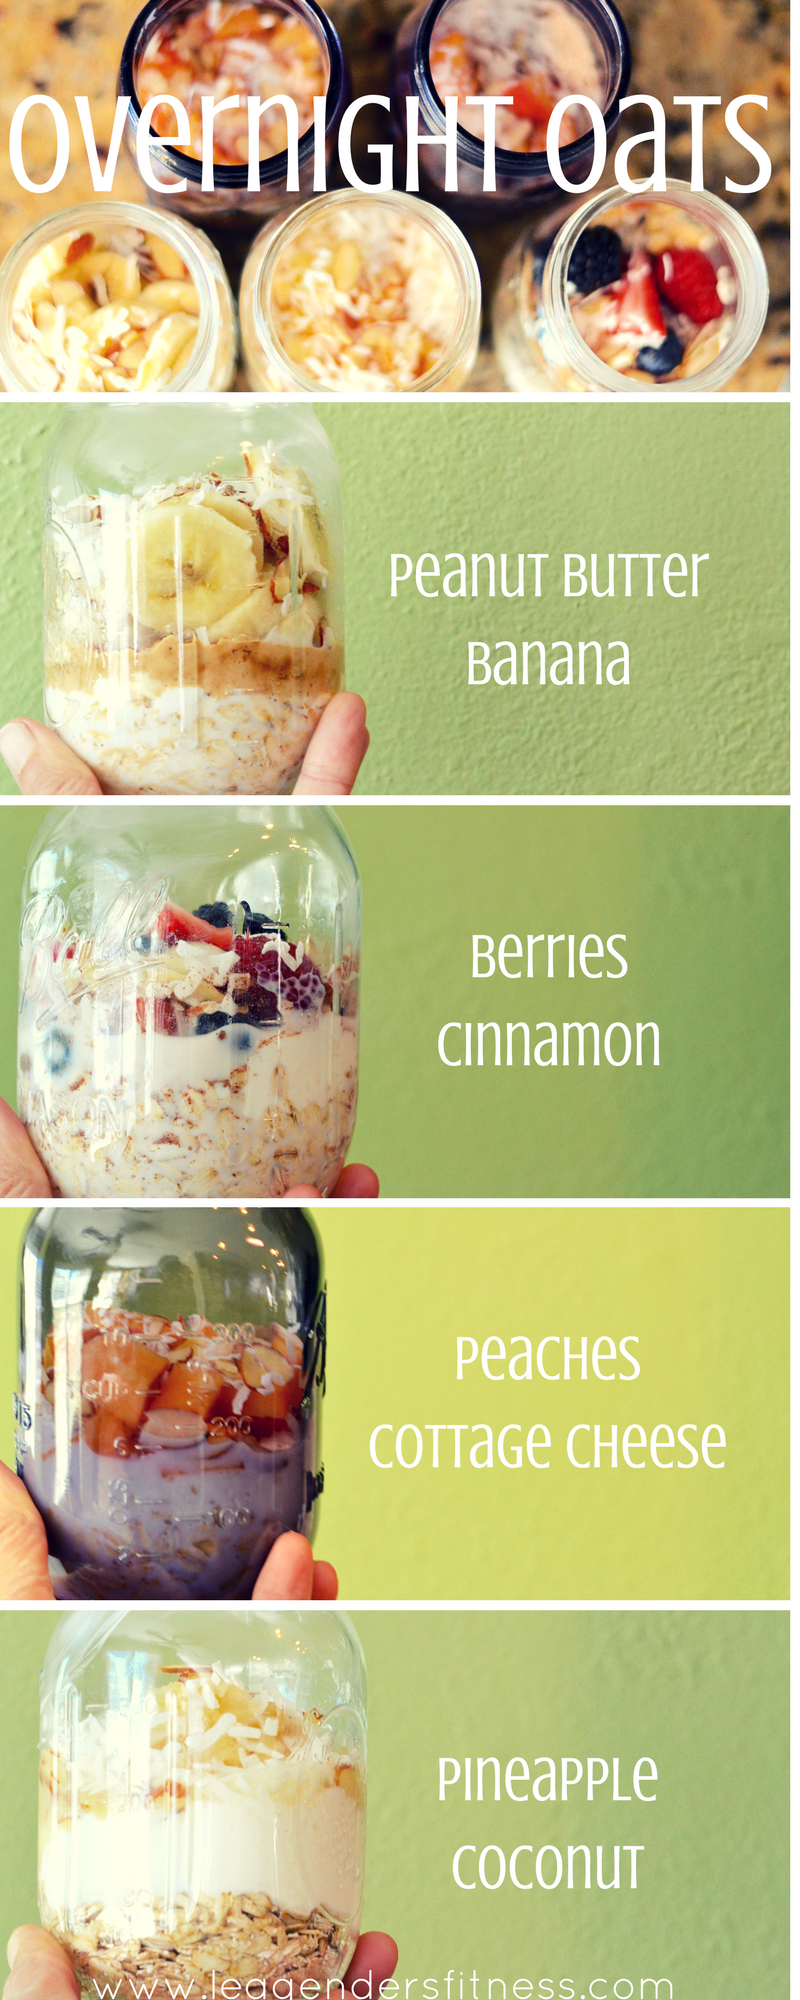 Overnight Oats - Save on Pinterest for later!